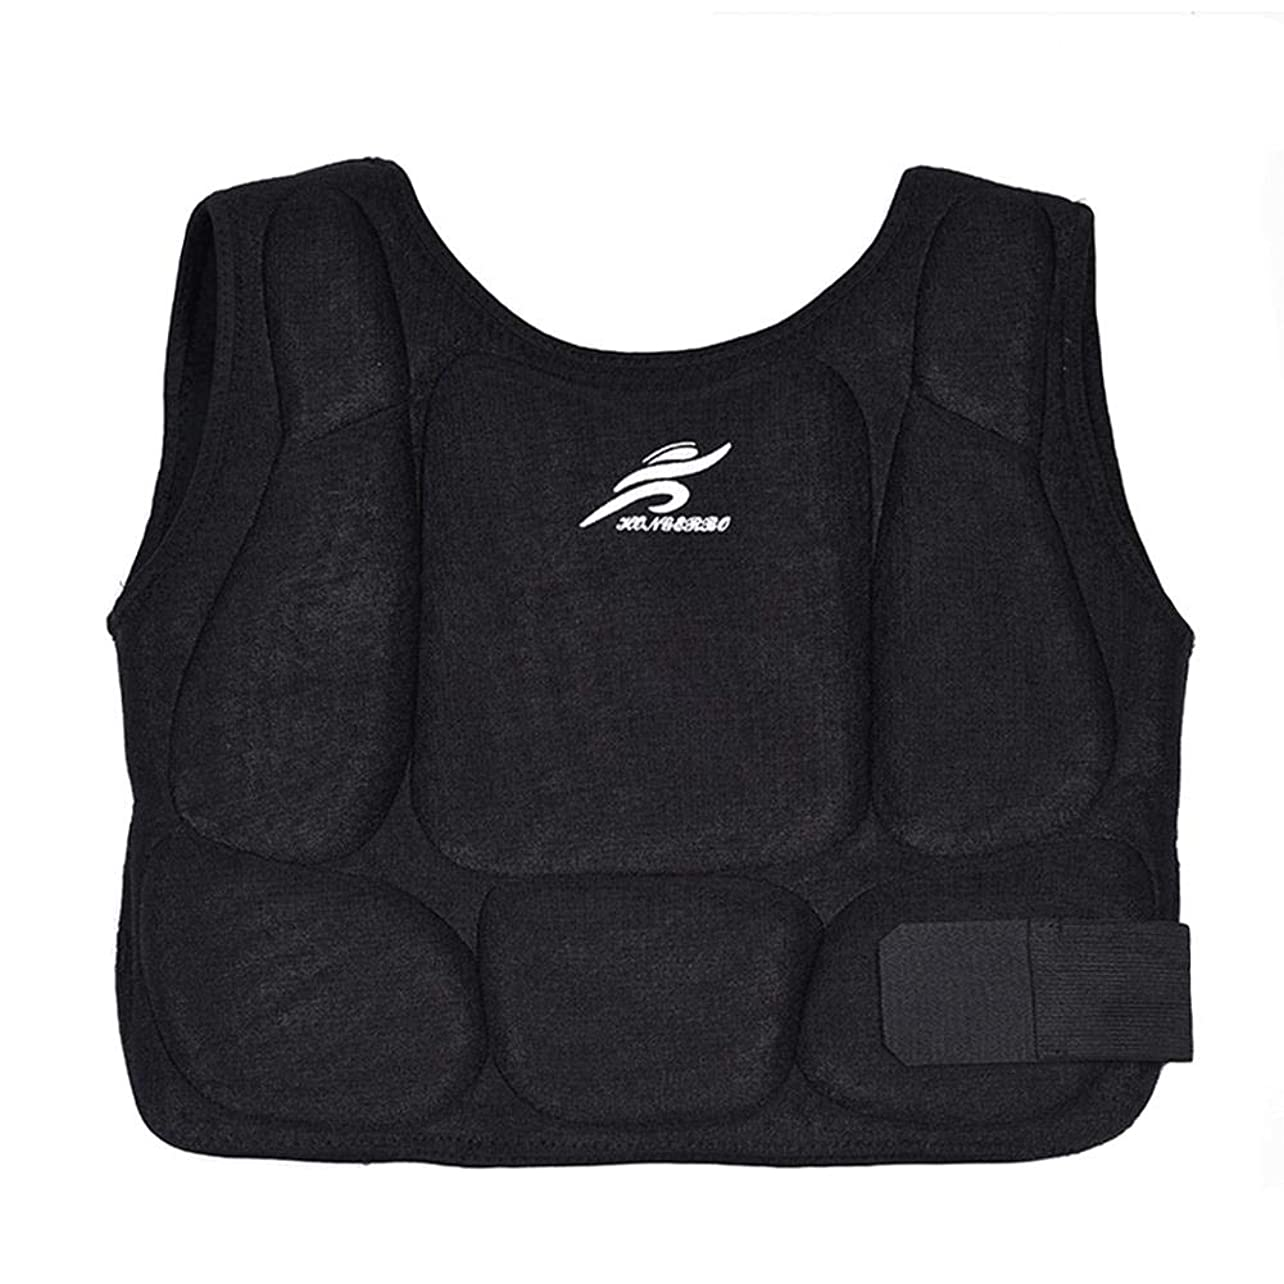 Karate Chest Guard Protector Kids Teens Adult Taekwondo Training Martial Arts Vest Boxing Body Breast Wear Shoulder Protection Waistcoat Armour Pad For Kick Of Ribs Belly Rib Shield Protective fnayrewjlkq28